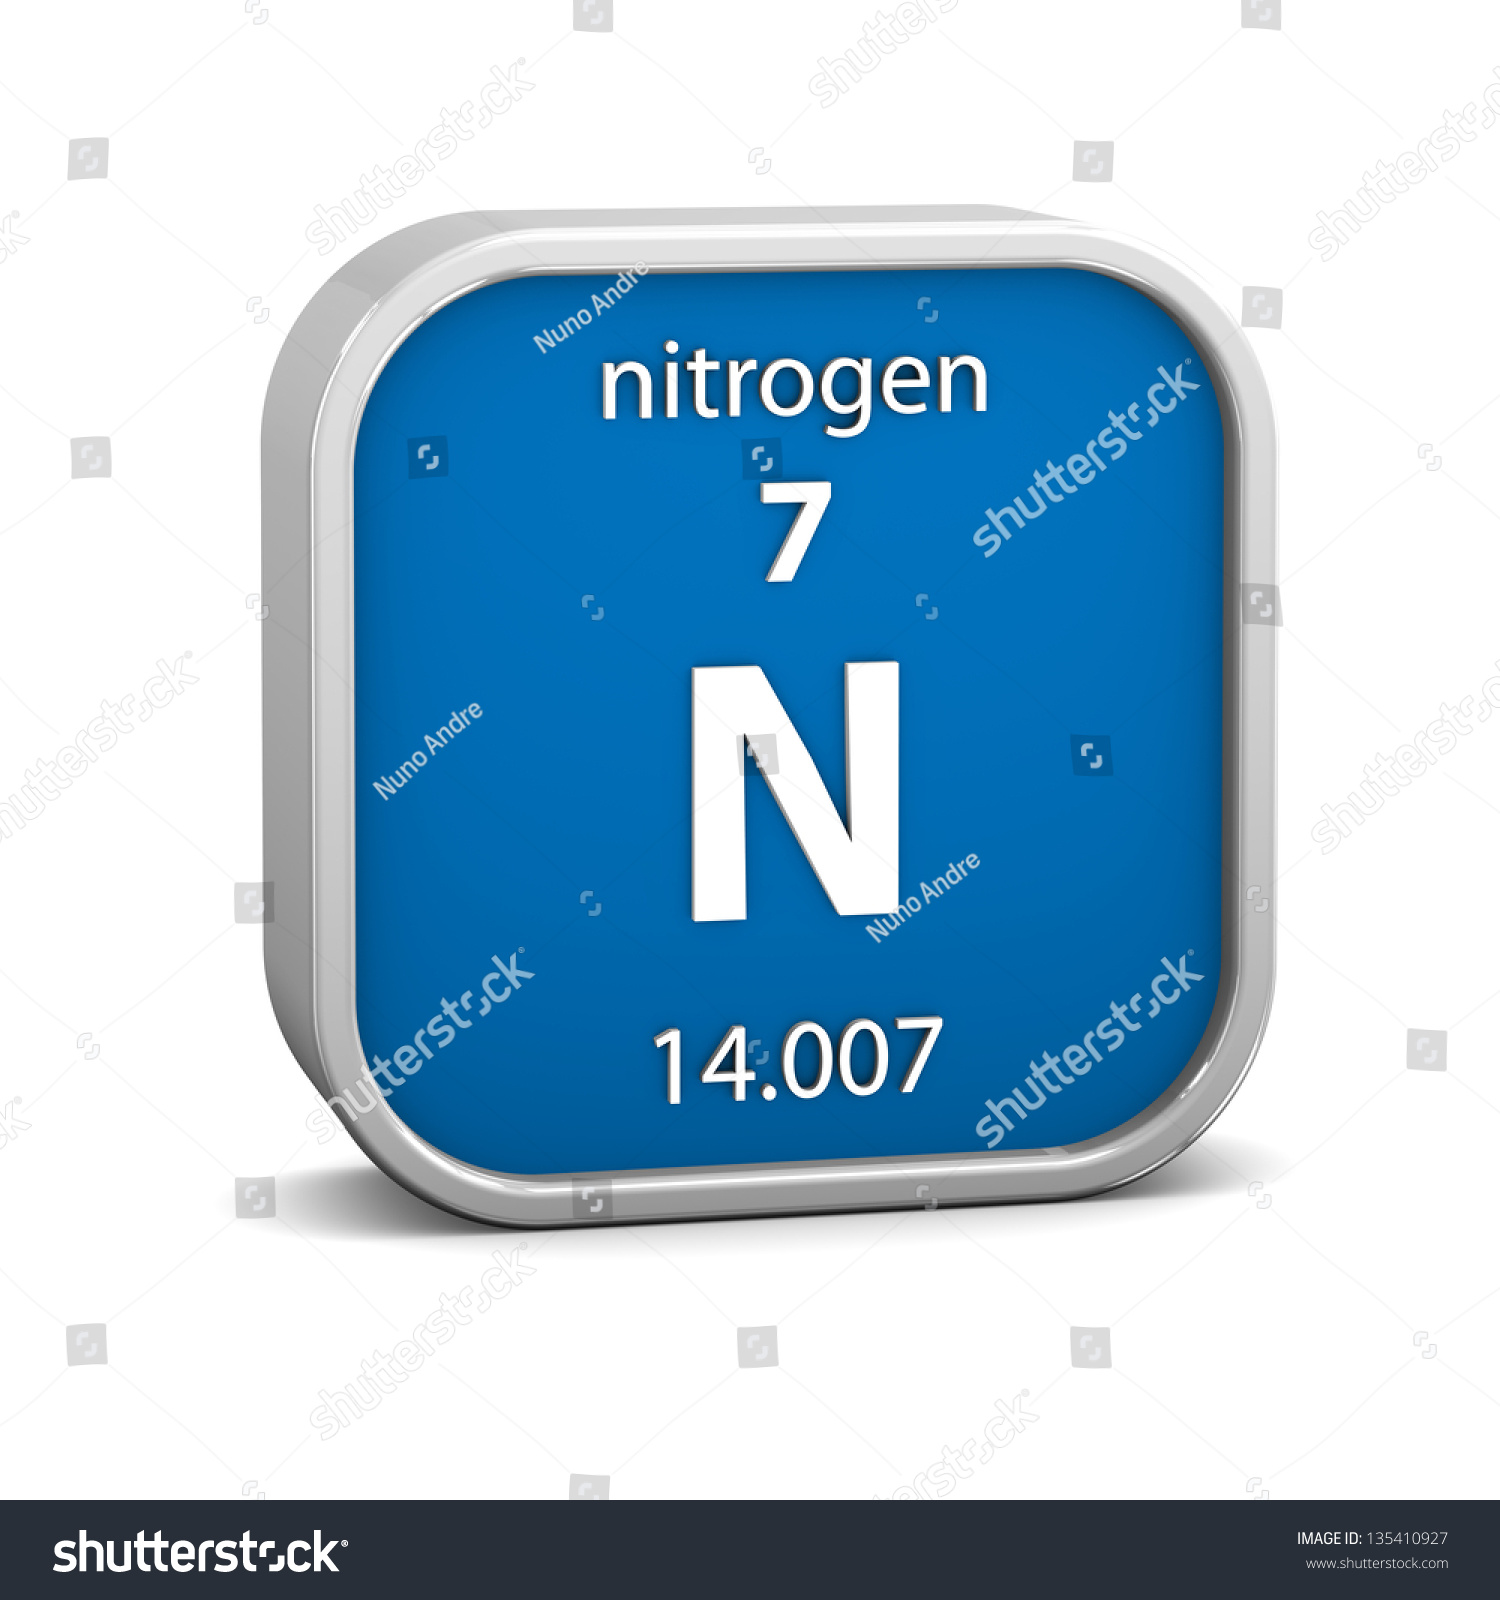 Nitrogen material on periodic table part stock illustration nitrogen material on the periodic table part of a series gamestrikefo Gallery